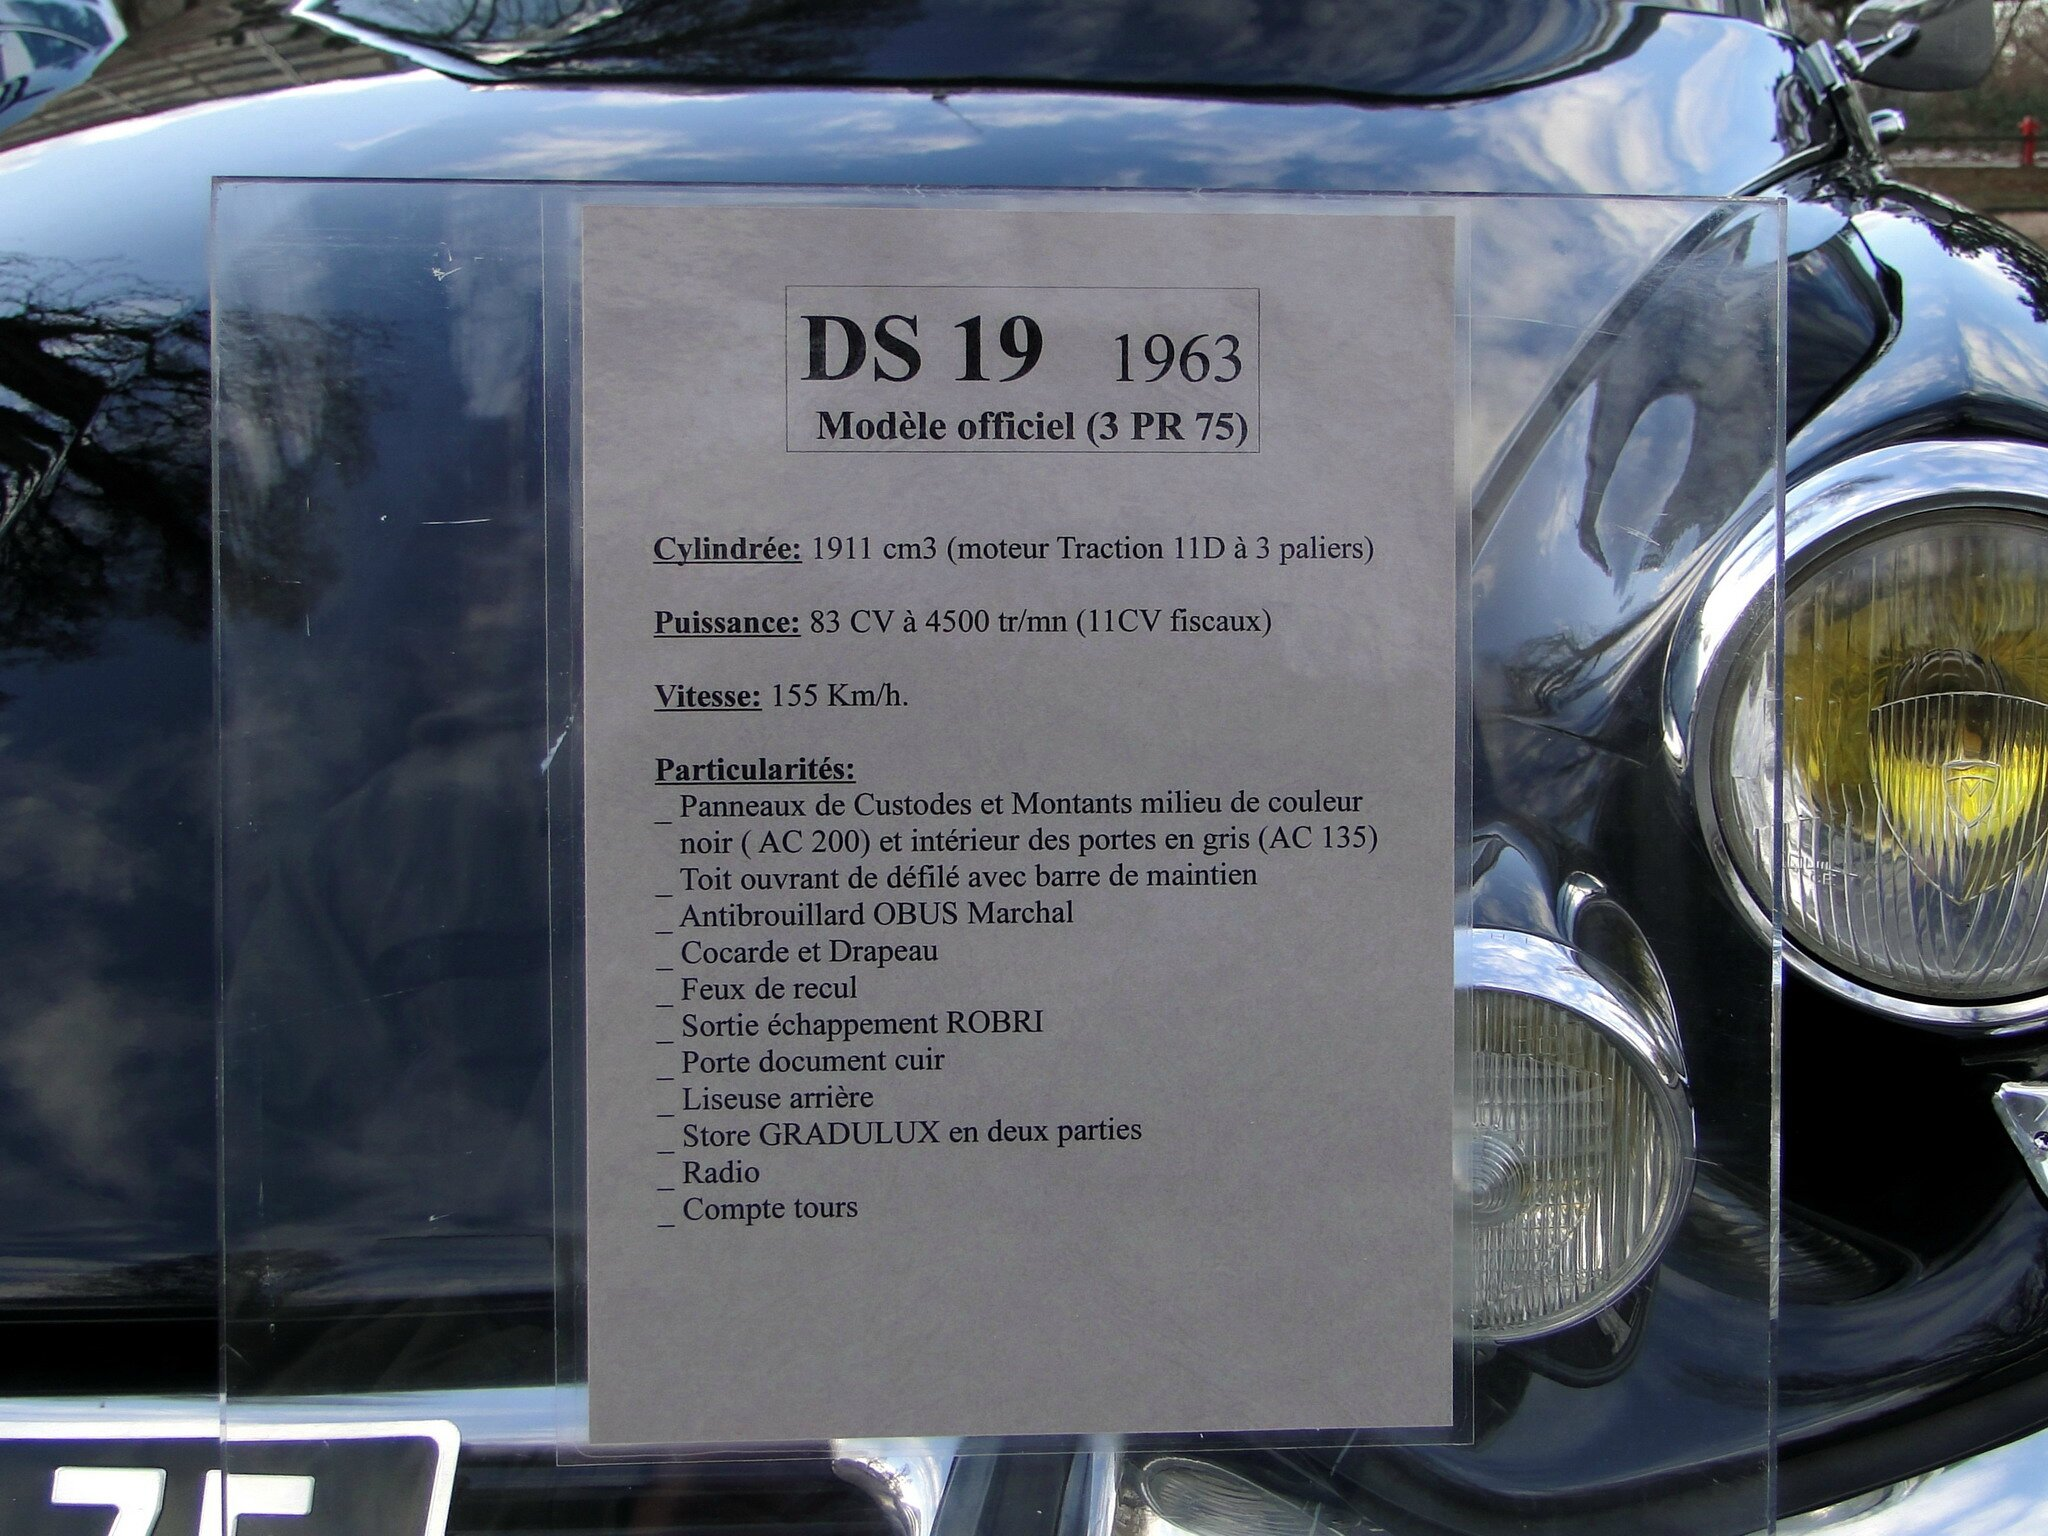 citro u00ebn ds 19 mod u00e8le officiel-1963